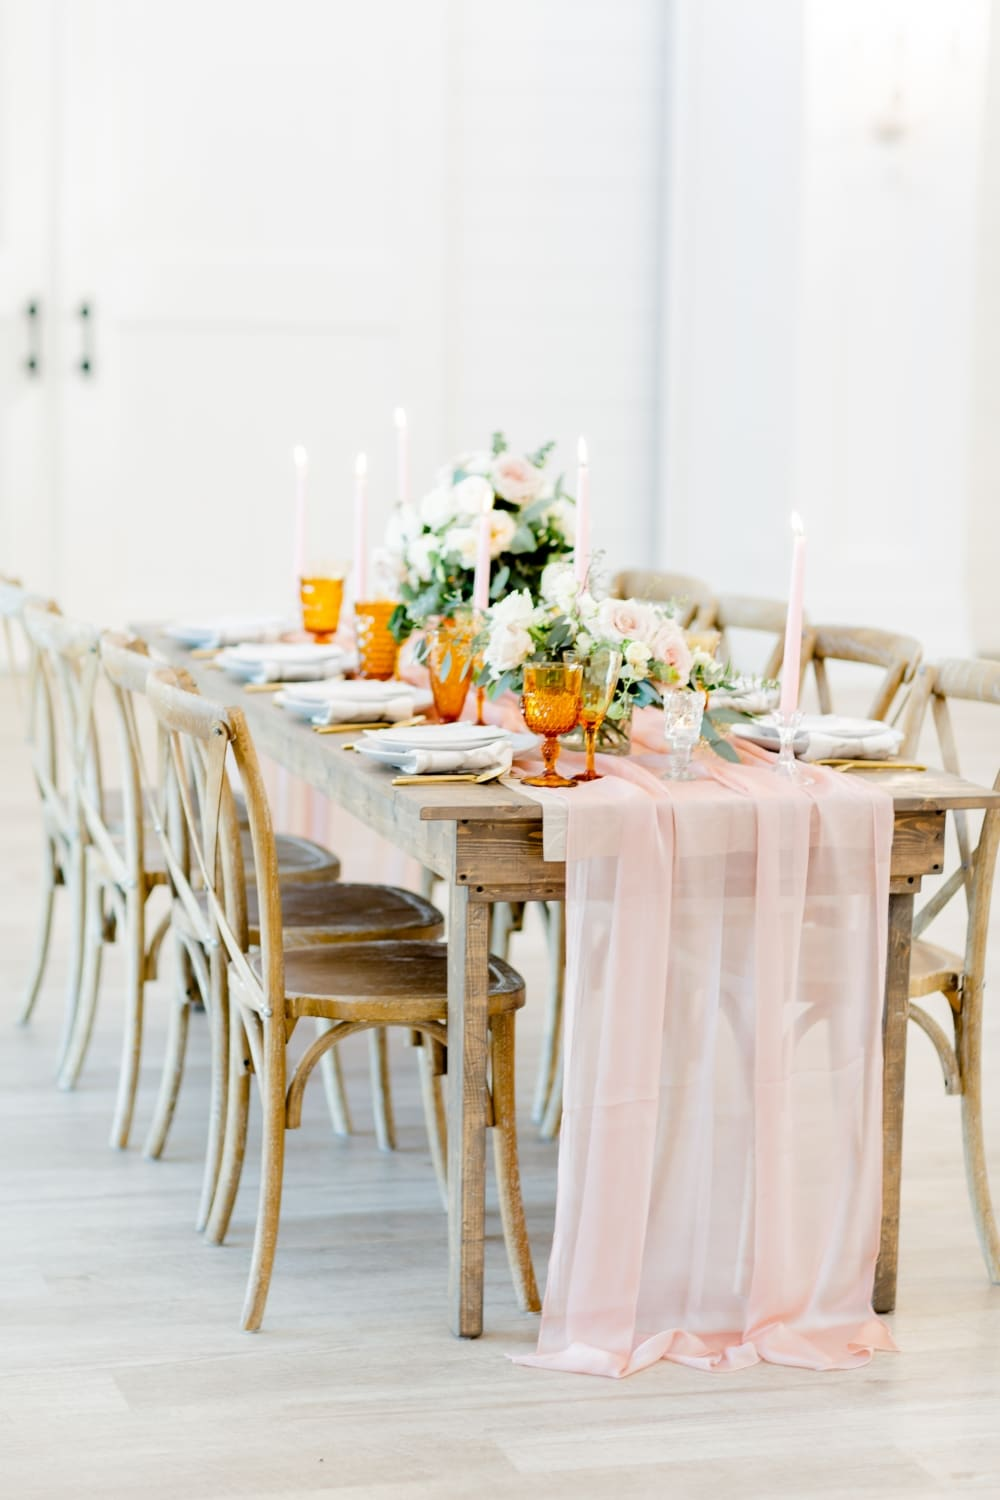 rustic fall wedding table with blush pink runner and orange glasses